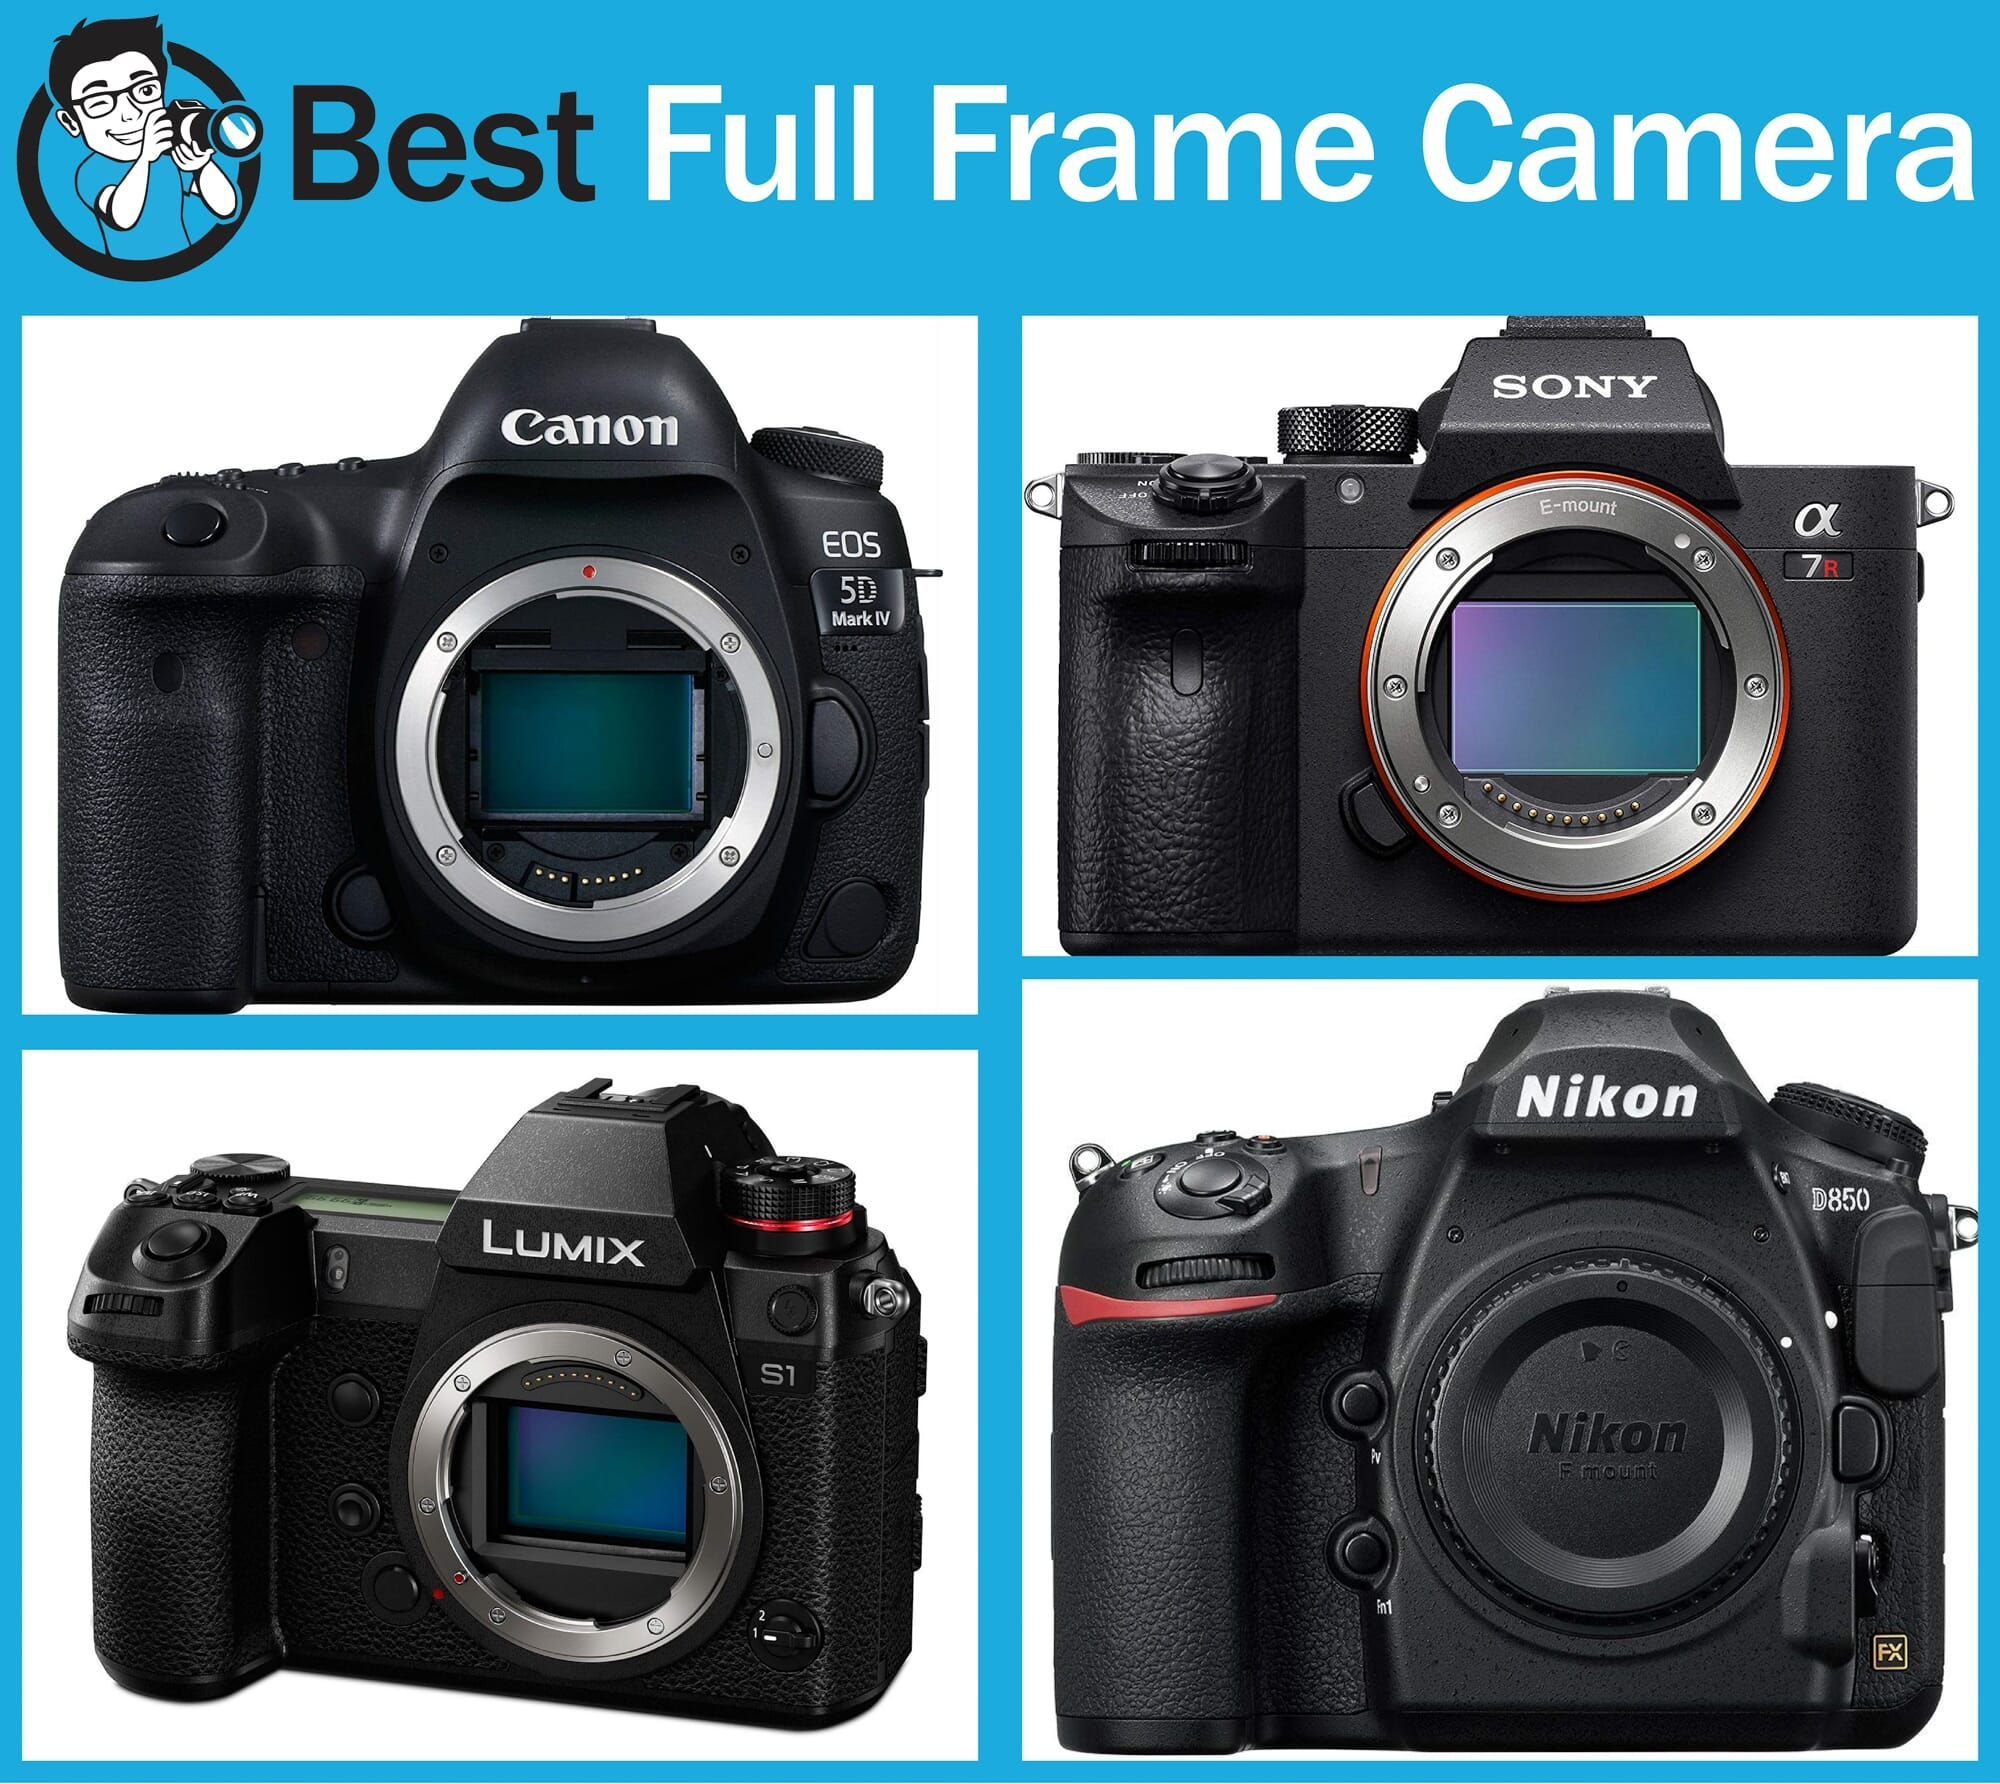 Best Full Frame Camera Bodies On The Market In 2019 In 2020 Full Frame Camera Sony Camera Photography Gear Storage